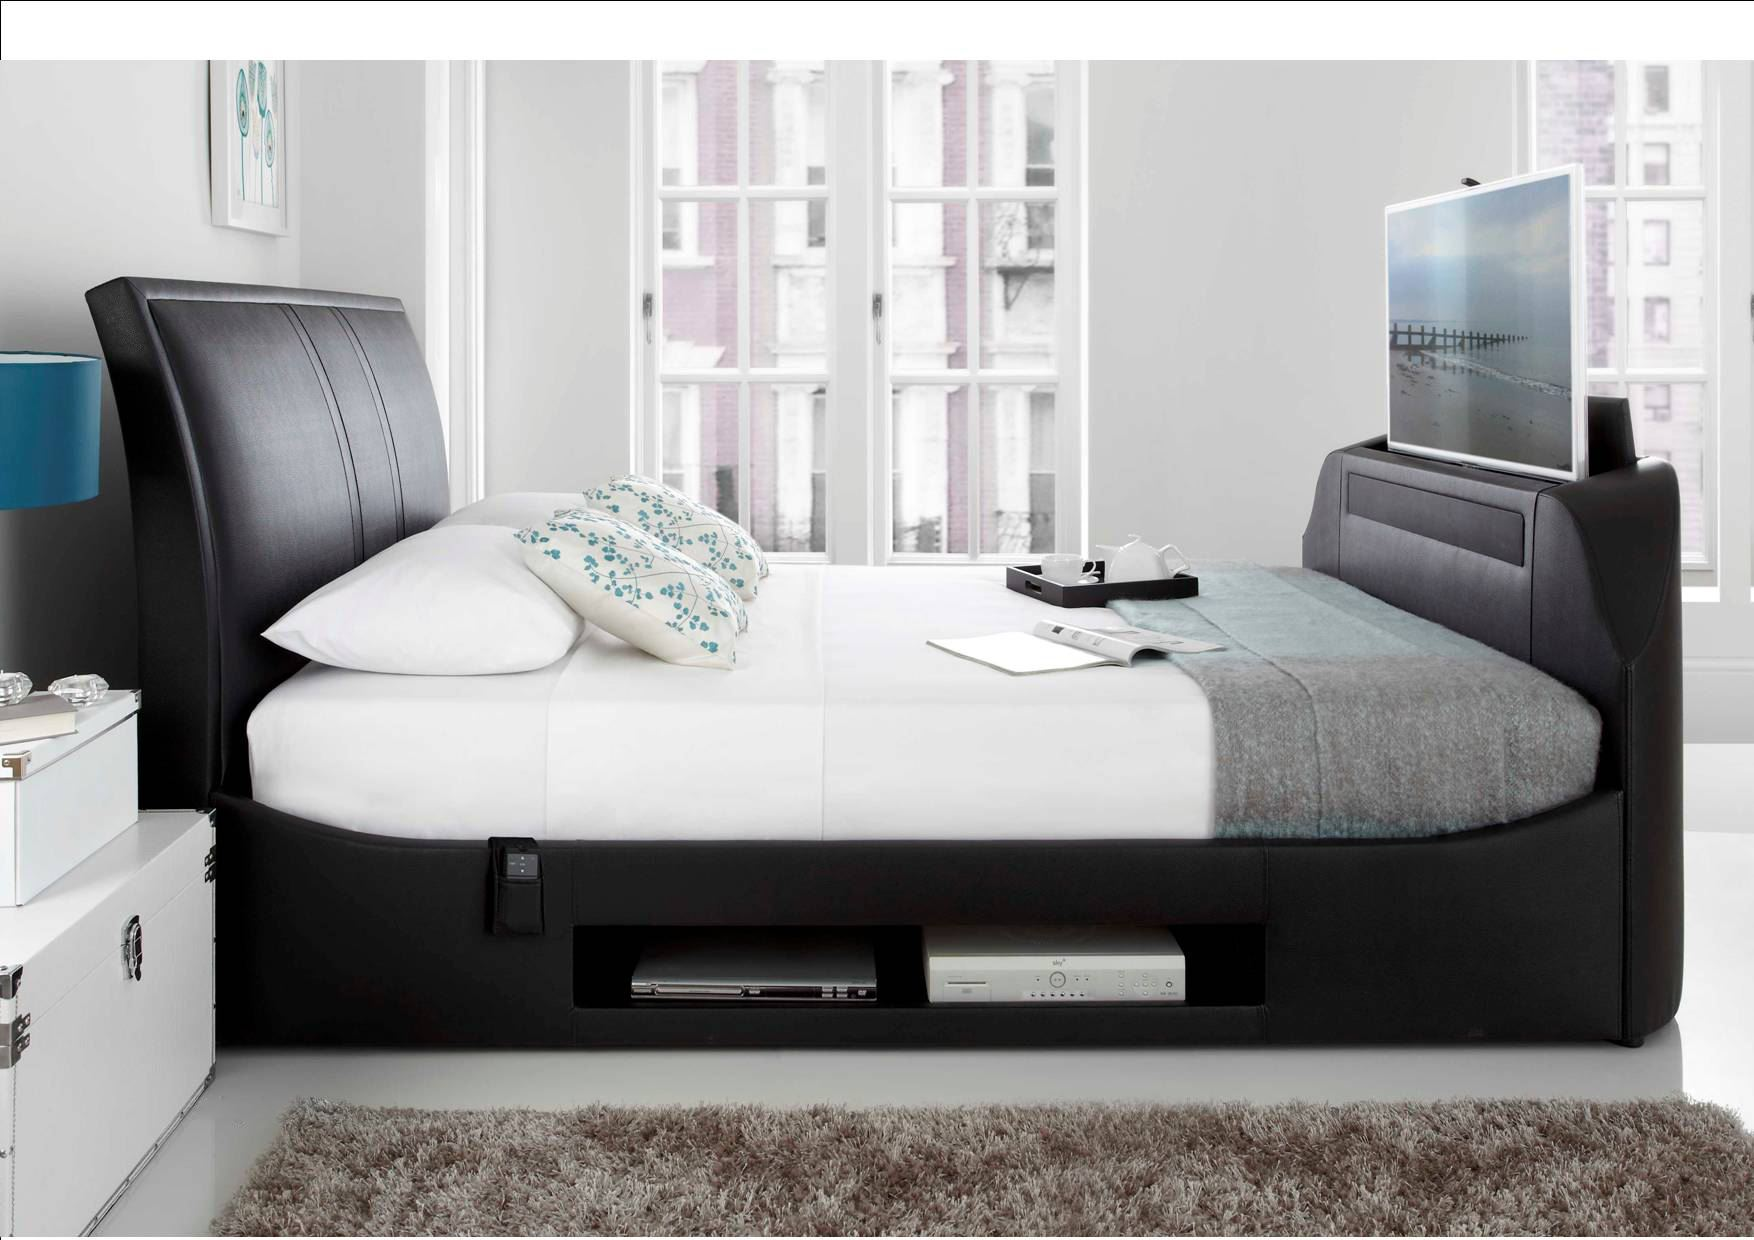 Happy beds maximus black leather tv bed with sound bar frame picture 4 of 4 jeuxipadfo Images